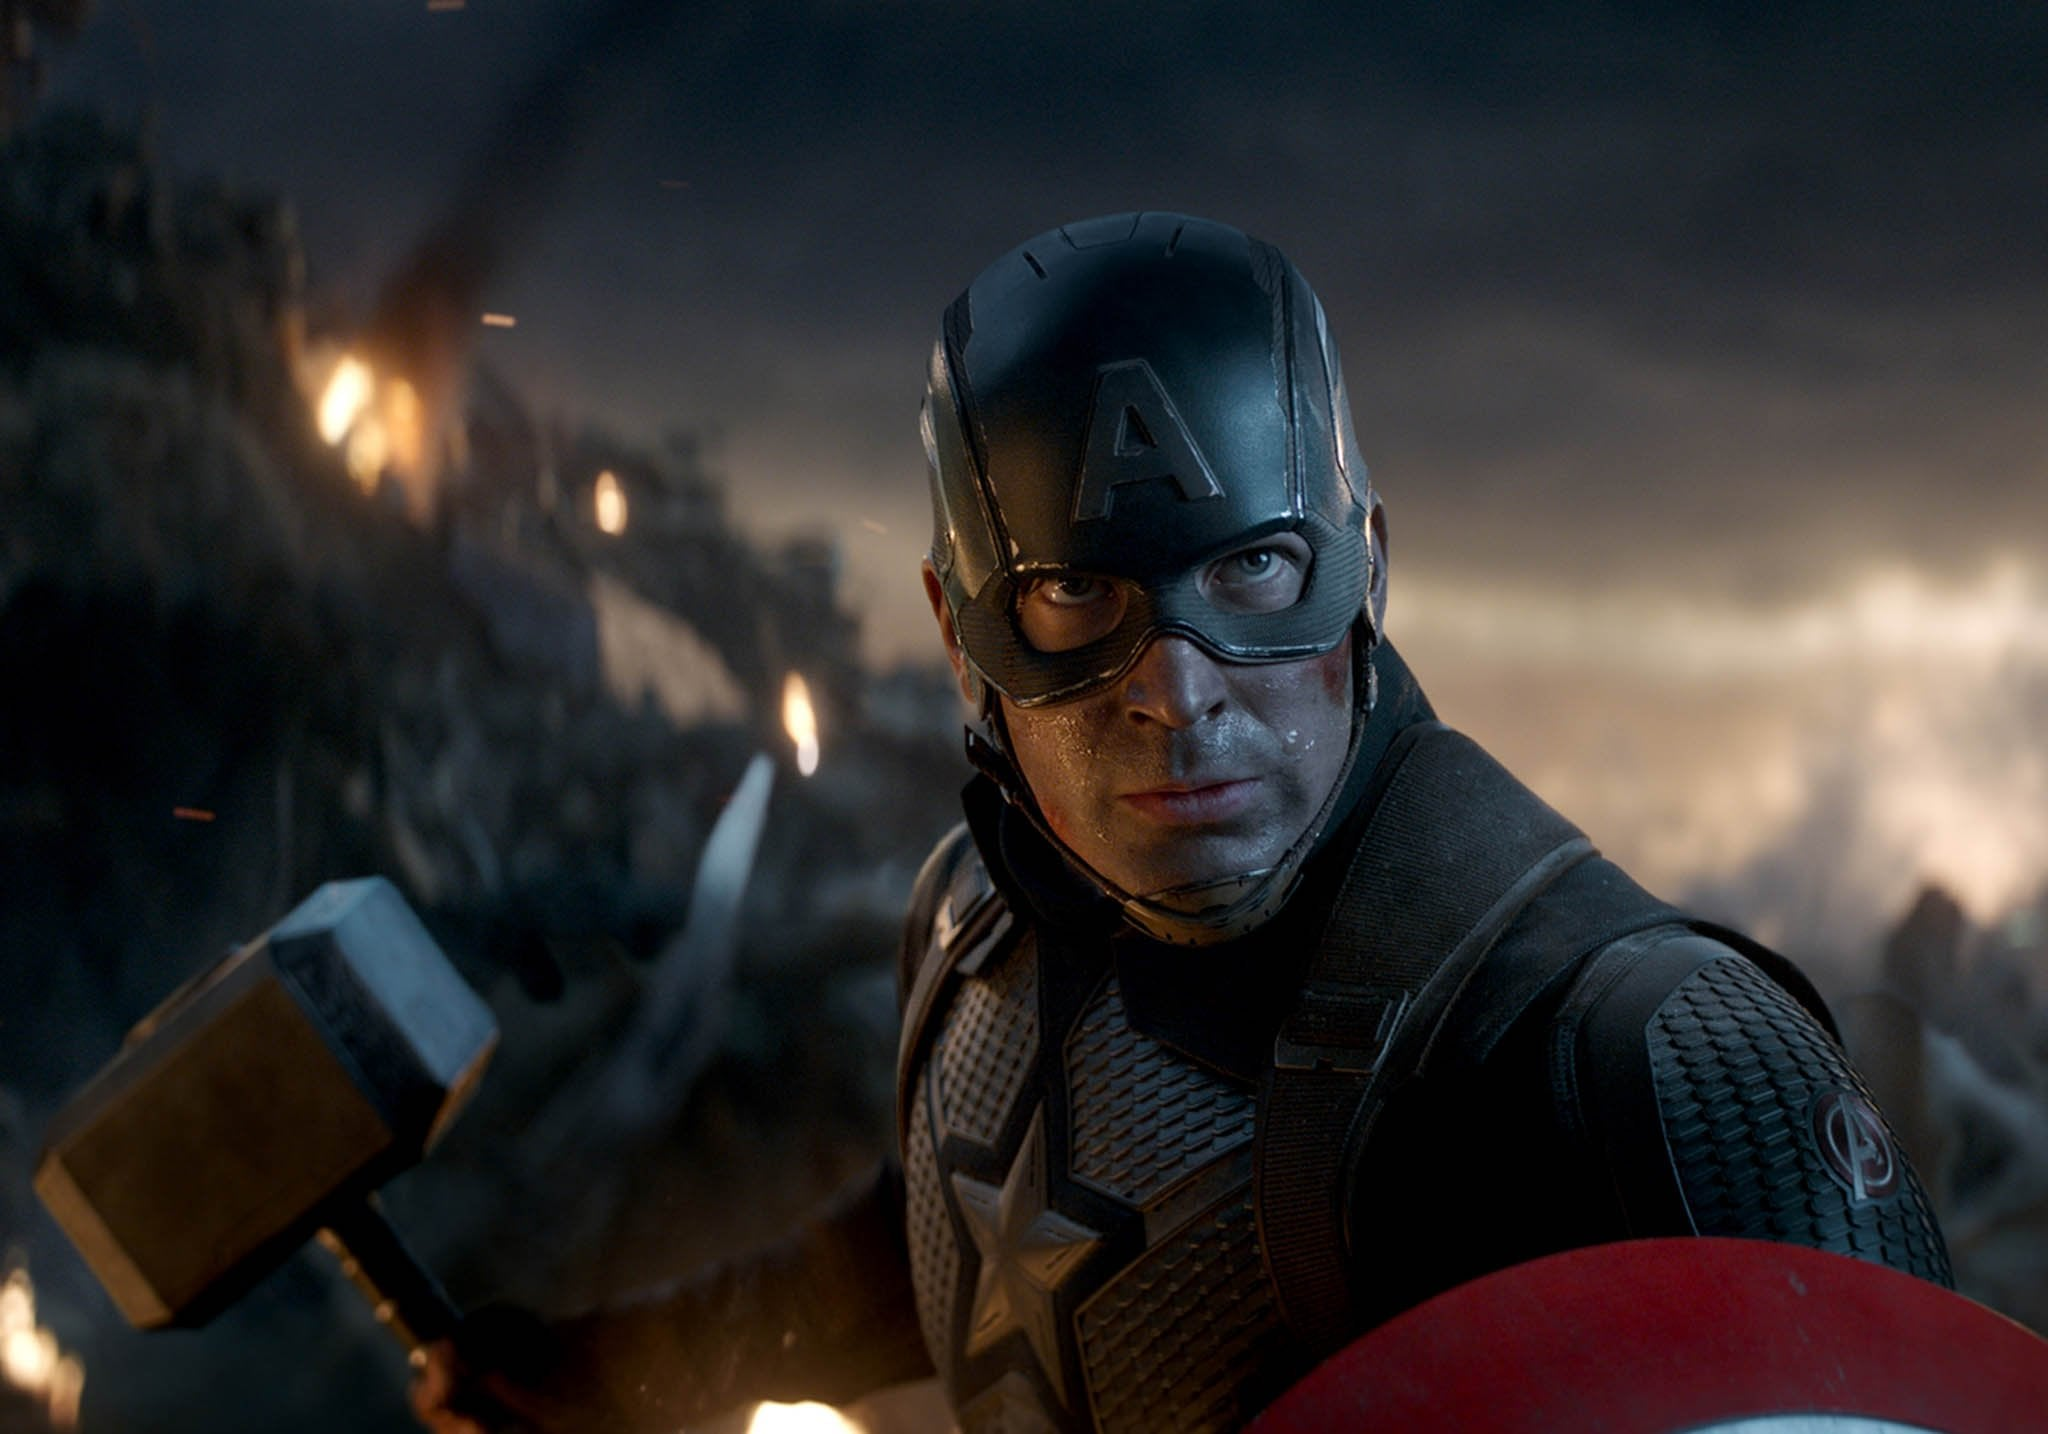 Avengers Endgame Check Out Some Never Before Seen Images